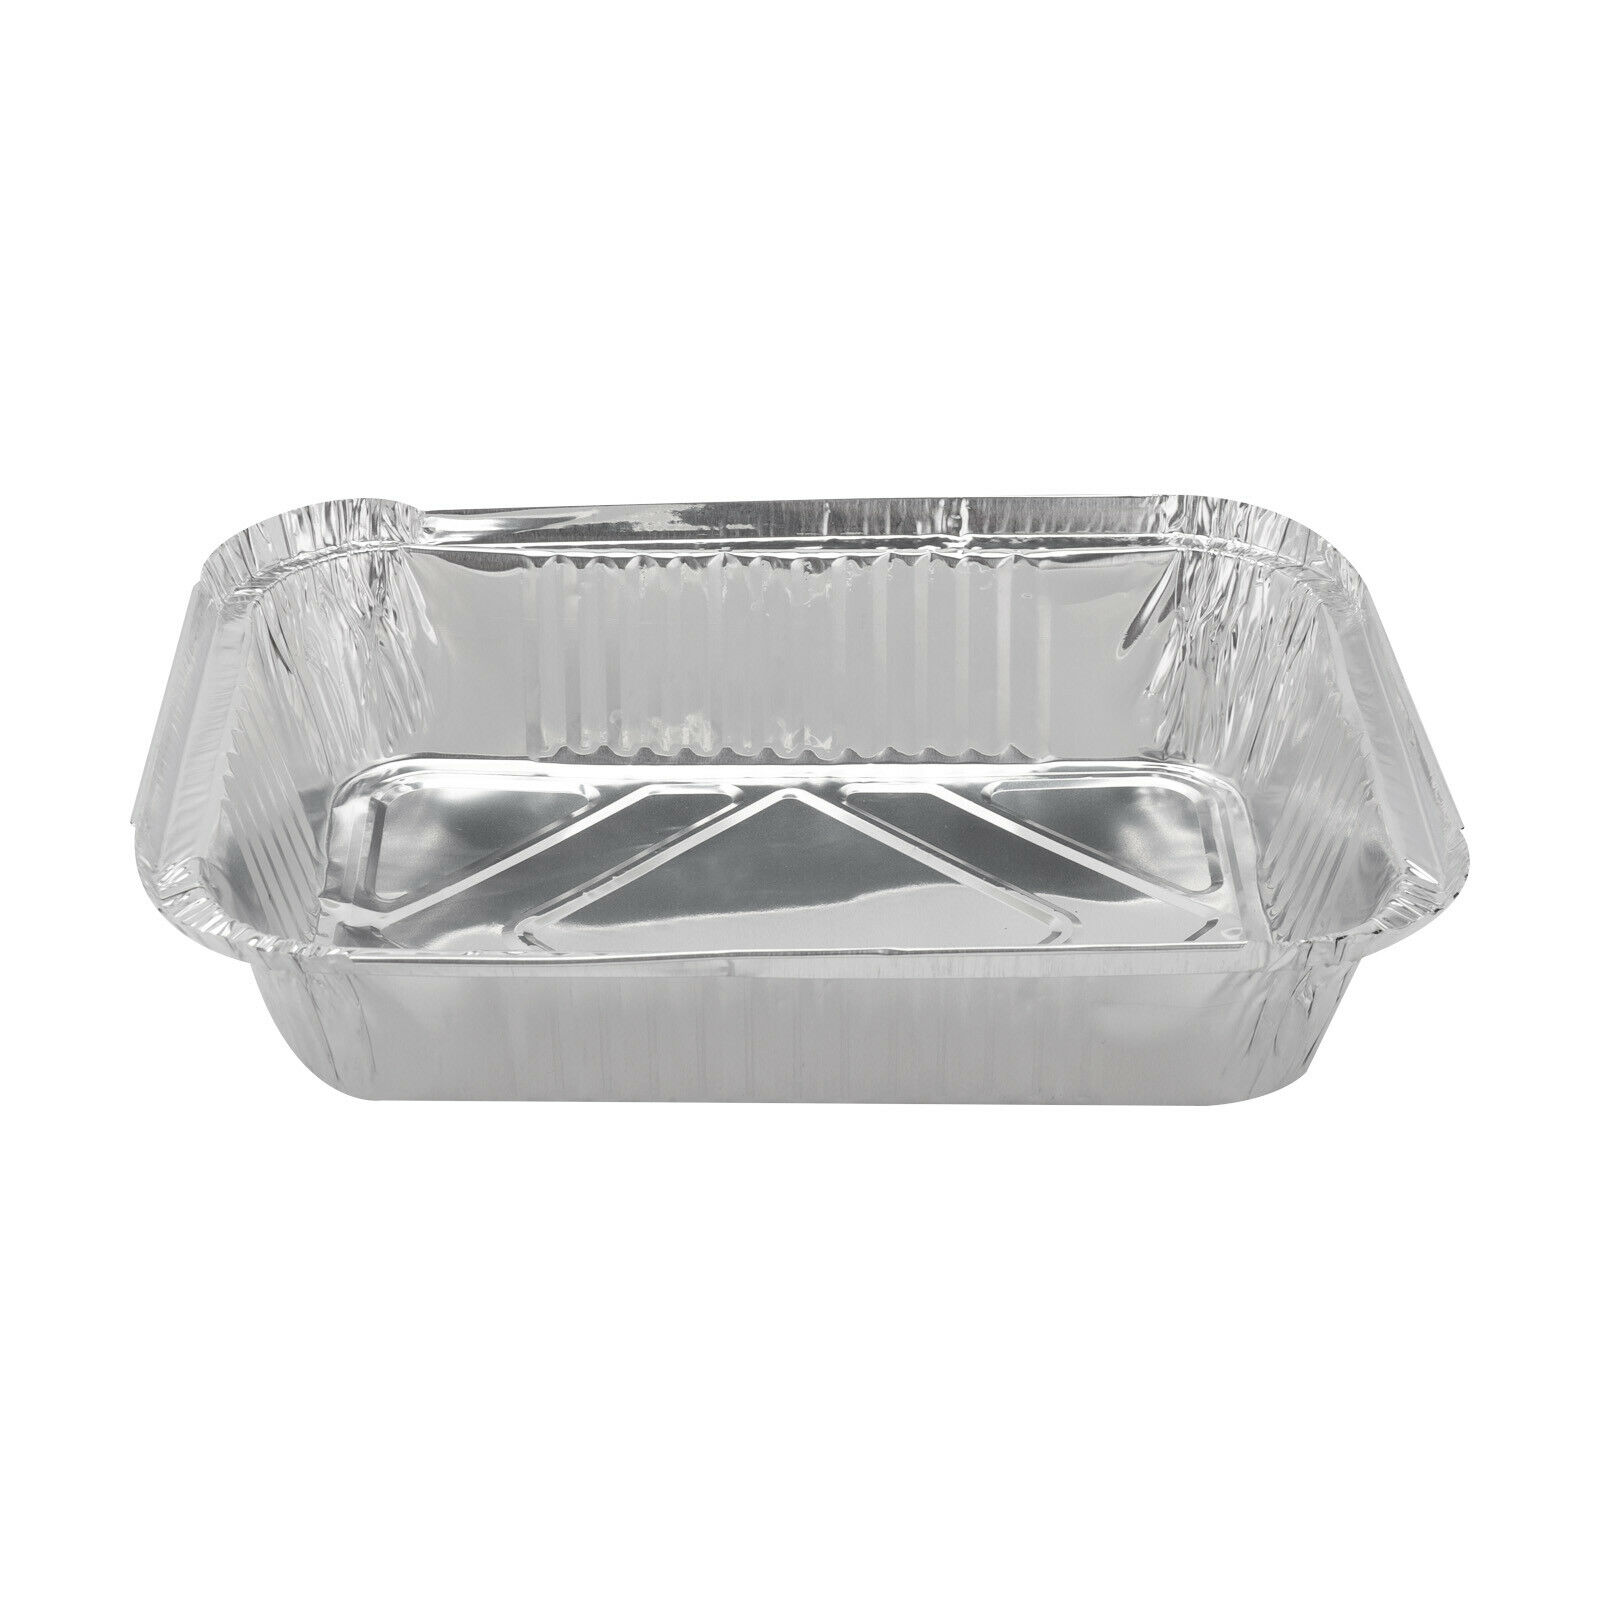 Lids 20x Disposable Aluminum Foil Tin Trays Roasting Takeaway Oven Baking Tray